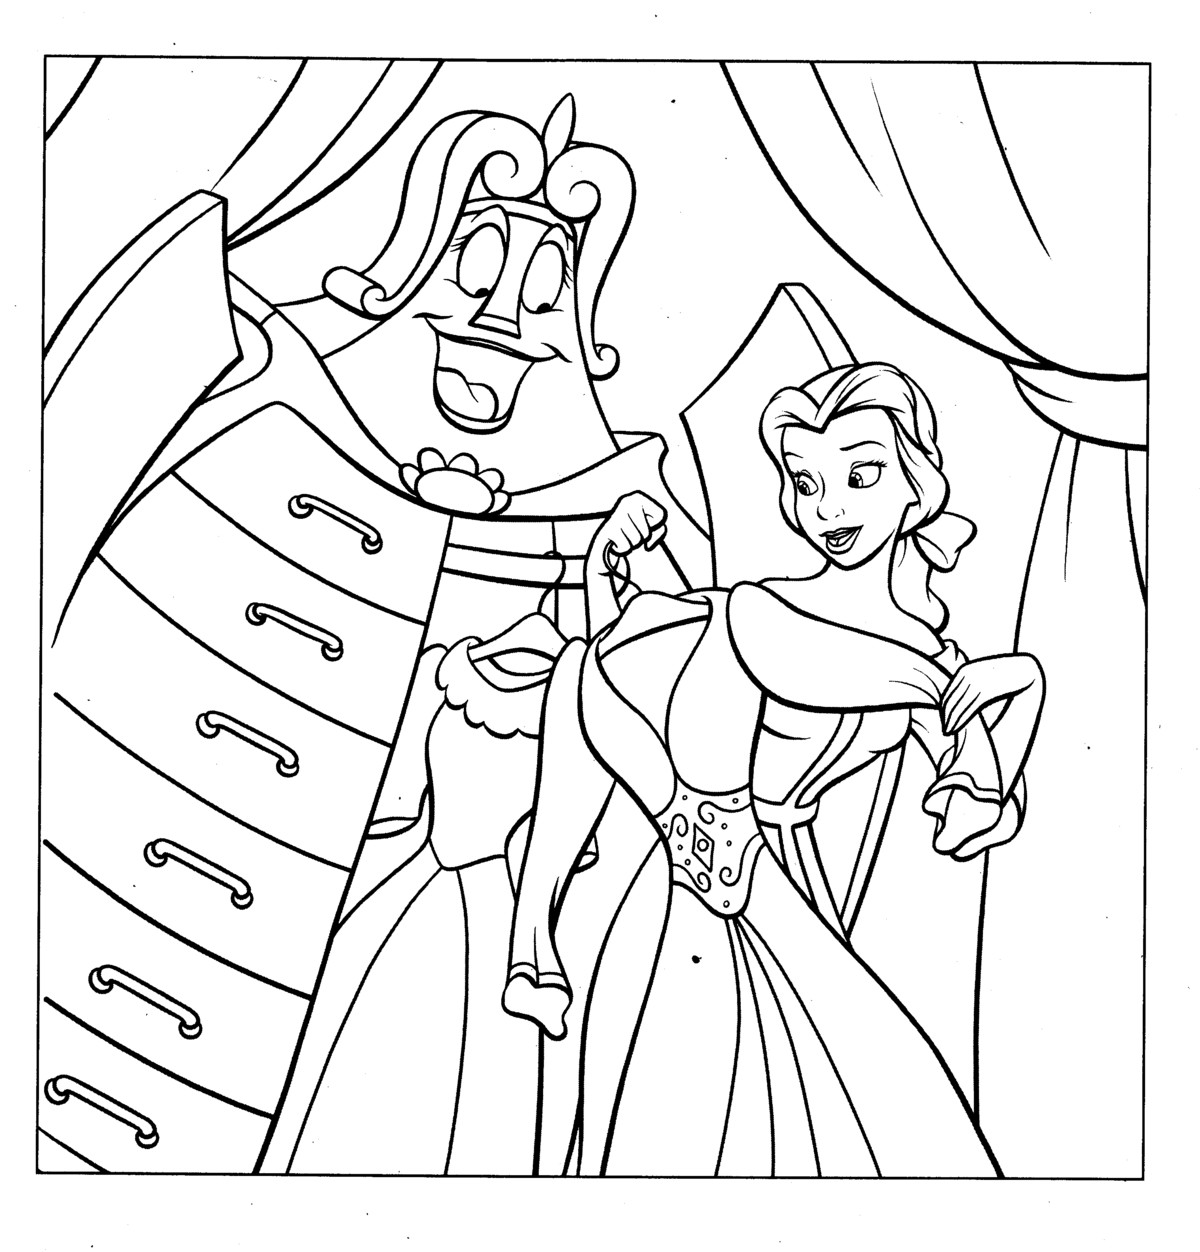 Belle Princess Coloring Pages For Kids Free Printable Coloring Pages For Kids Colouring Pages